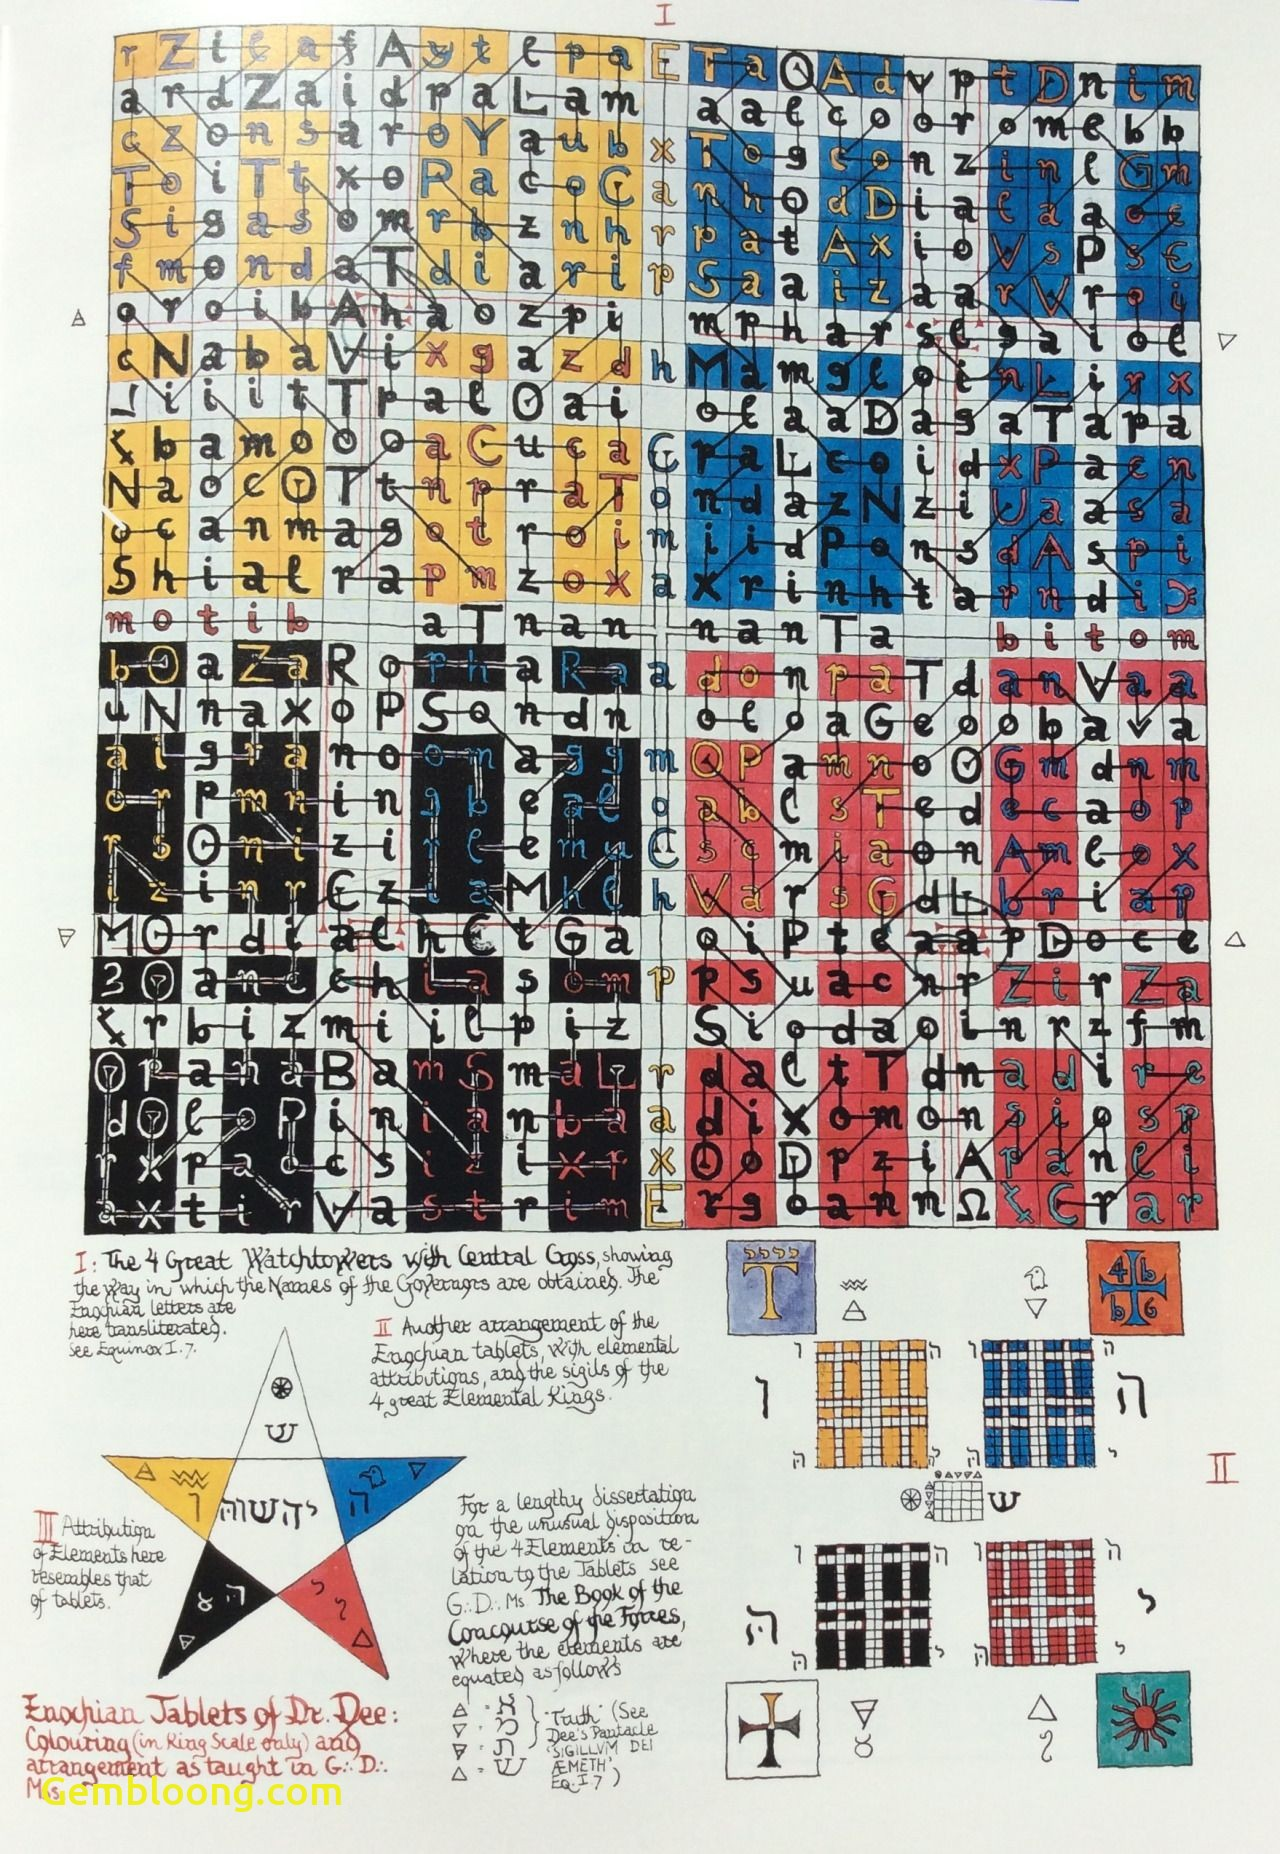 Free Carfax Information Luxury Enochian Magic Diagrams Painted by Steffi Grant From